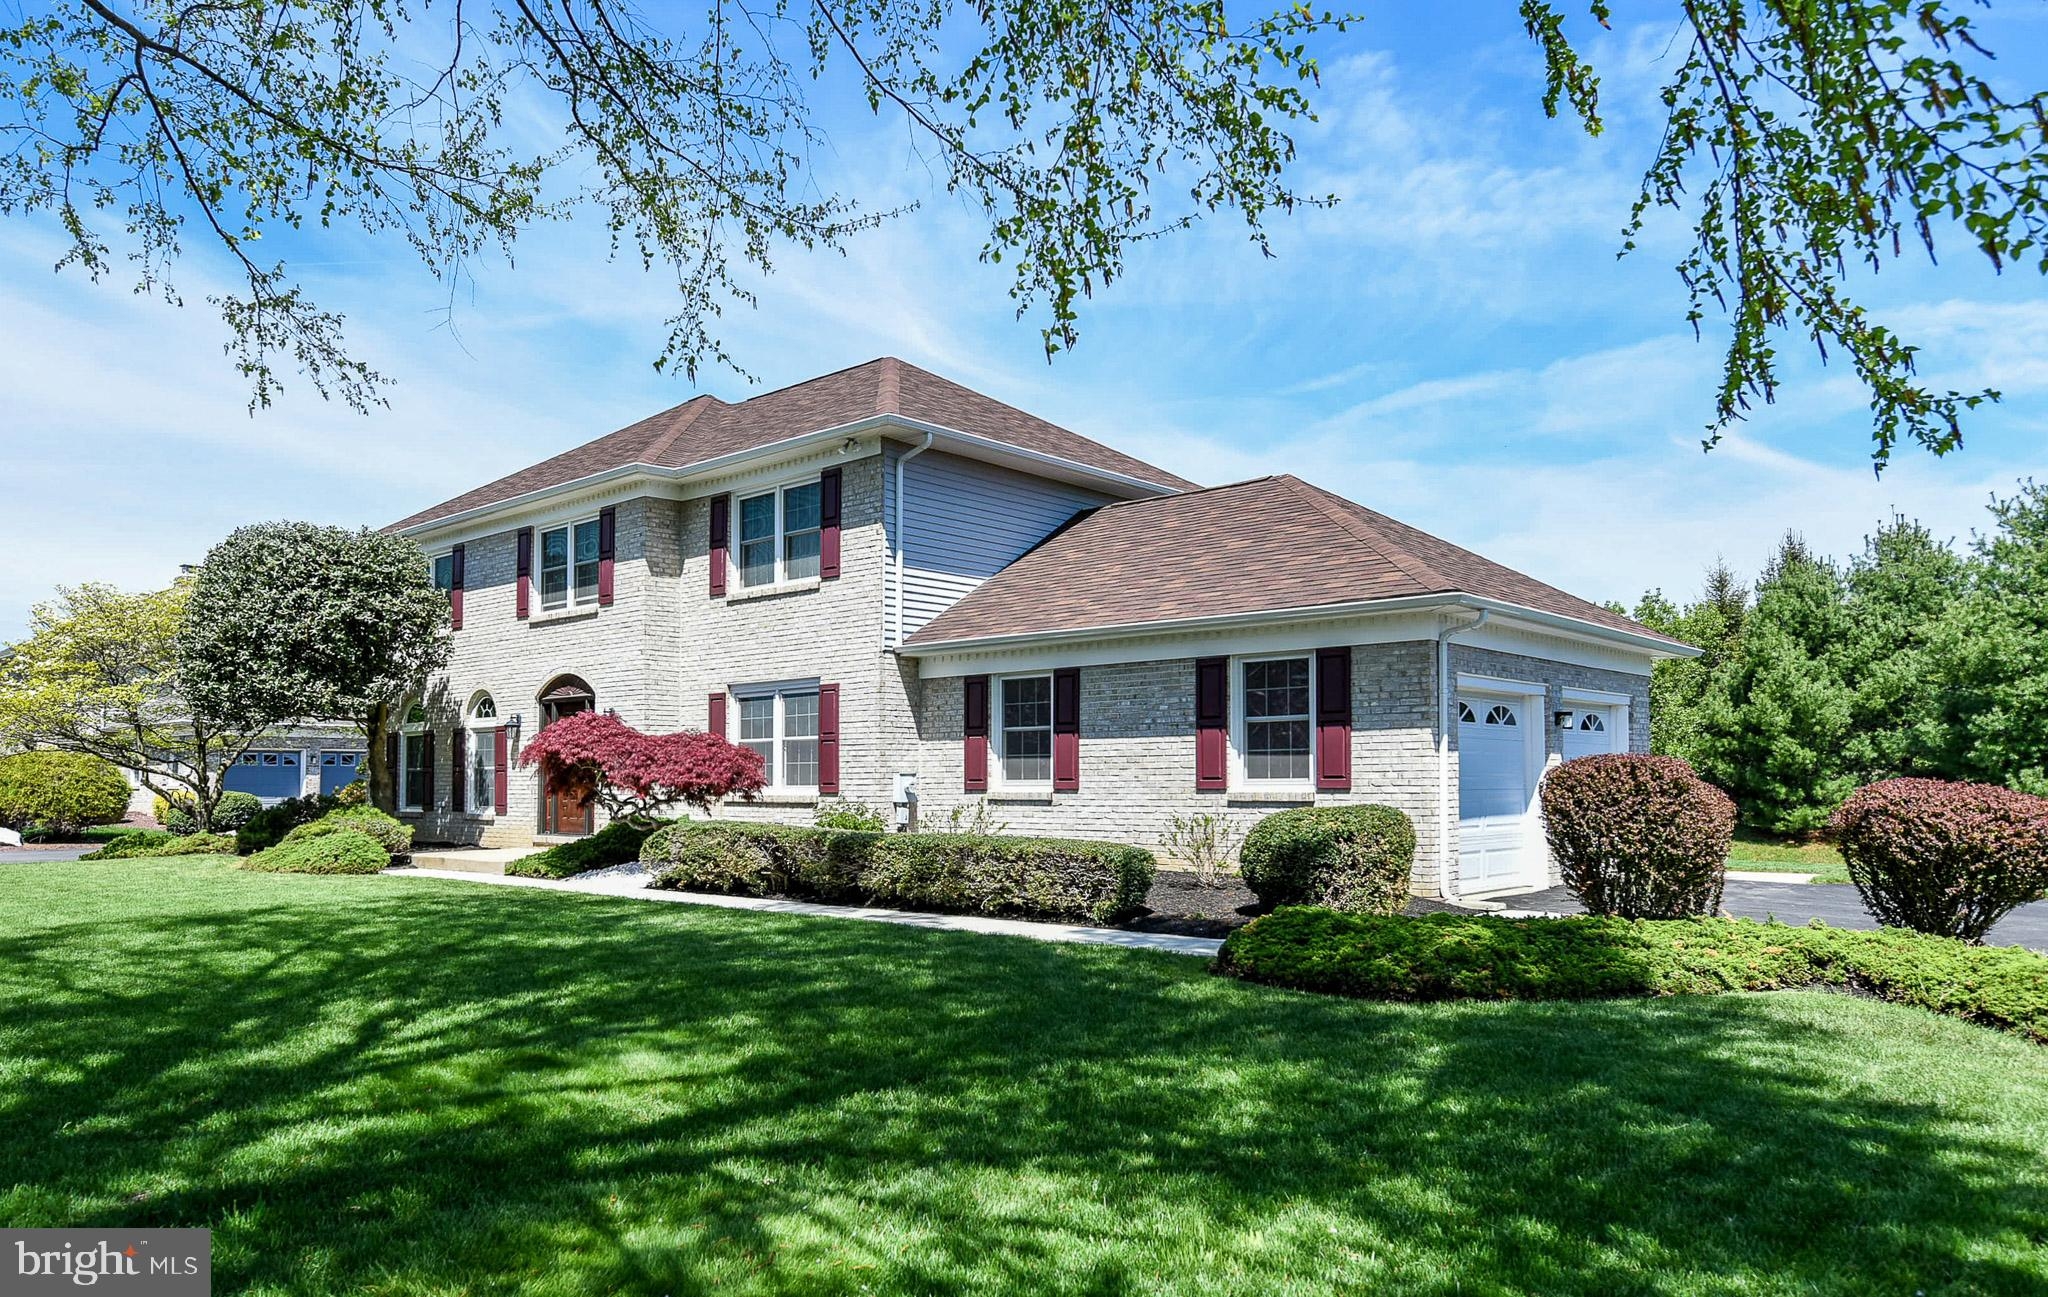 Stately 4BR,  2.1BA  quality built  R. C. Peoples  built colonial that is loaded with upgrades! Original owners have paid meticulous attention to every aspect of this home and it shows. The open and flowing floor plan features center hall entry, formal living and dining rooms, large eat in kitchen eating area that opens directly to the family room. The second story includes: a large master w/full bath & walk-in closet, three additional generously size bedrooms and a second full bath. Numerous significant upgrades include: high performance windows, 30 year architectural roof, energy efficient gas heater & central air conditioning, fiberglass entry door w/lead glass side lights, sliding glass door,  new driveway & sidewalks, hardscaping, and additional insulation in garage and attic. Other features such as: gleaming site finished hardwood throughout  maintenance free brick and aluminum exterior, turned two-car garage, fenced yard and enlarged floor plan when built make this home a standout at this price. Caravel Woods is located above the canal and in the award winning Appoquinimink School district. Just minutes from major roadway access, Christina Hospital, Shopping and the University of Delaware.